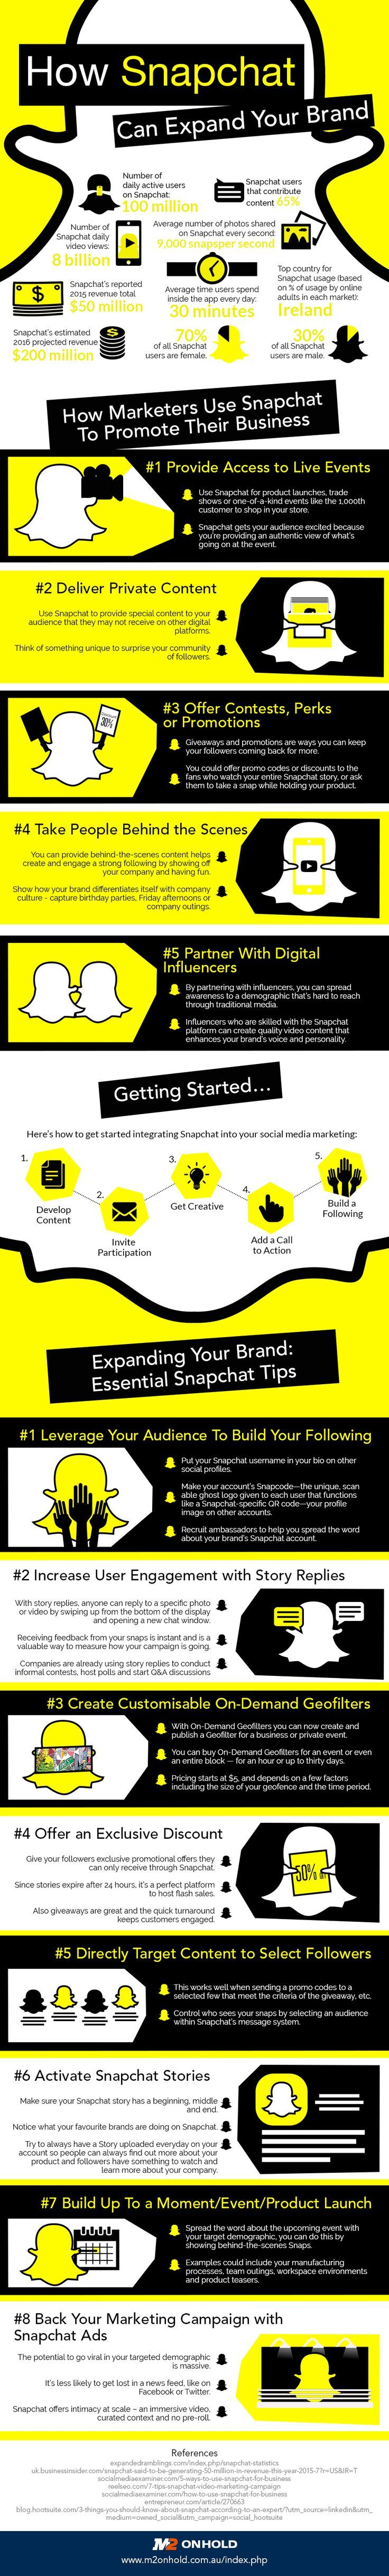 Snapchat Marketing for Beginners 13 Tips to Promote Your Business https://blog.red-website-design.co.uk/2016/07/01/snapchat-marketing-for-beginners-13-tips-to-promote-your-business/